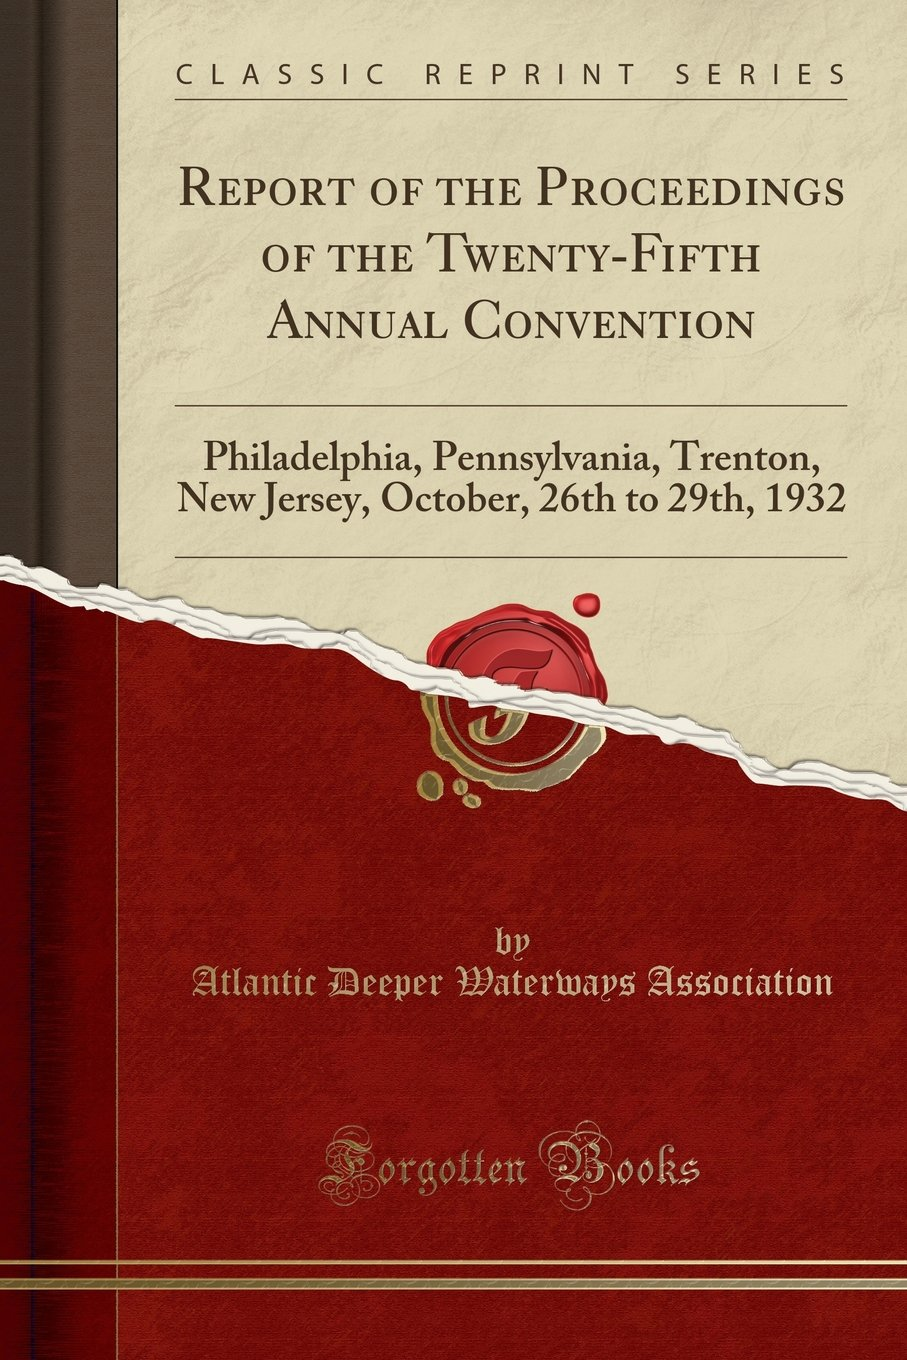 Read Online Report of the Proceedings of the Twenty-Fifth Annual Convention: Philadelphia, Pennsylvania, Trenton, New Jersey, October, 26th to 29th, 1932 (Classic Reprint) PDF